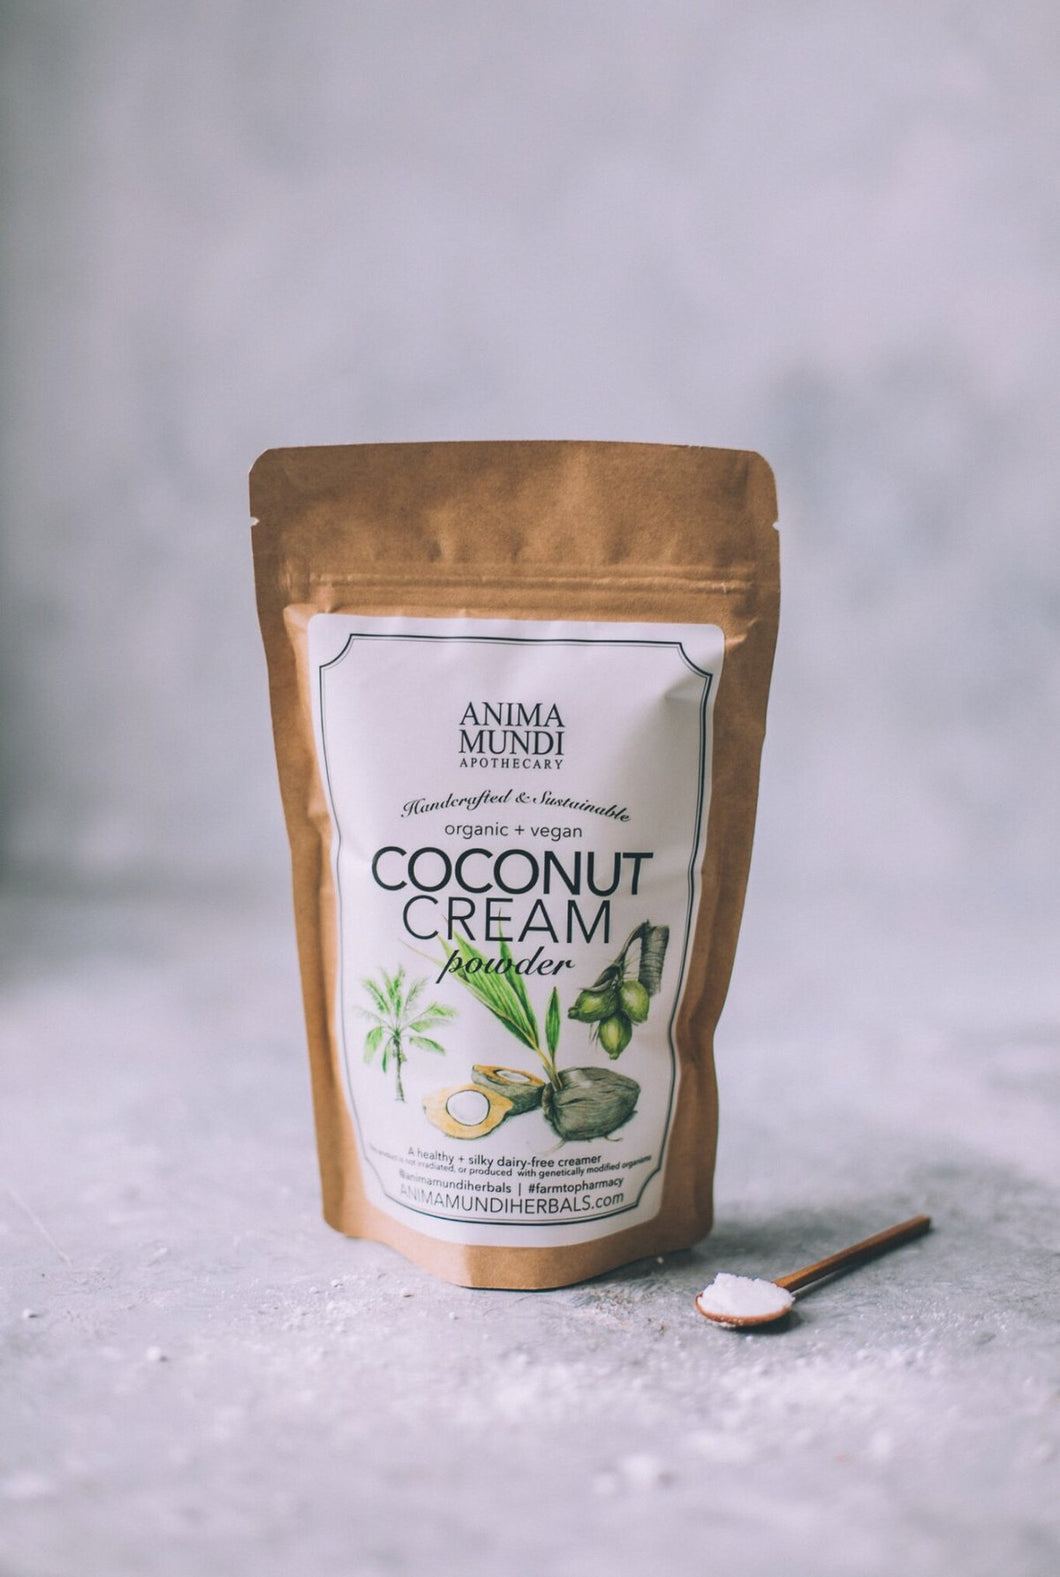 A luxurious creamy powder loaded with healthy oils and fiber. The naturally occurring MCT oils in coconut can nourish our gut, our skin, our brain, and beyond! Coconut meat is touted to be healthful for our immune system, nervous system, blood sugar, fat-protein metabolism, and healthy heart functions. It has a great amount of bulking fiber which maximizes digestive capabilities as well as bowel elimination.